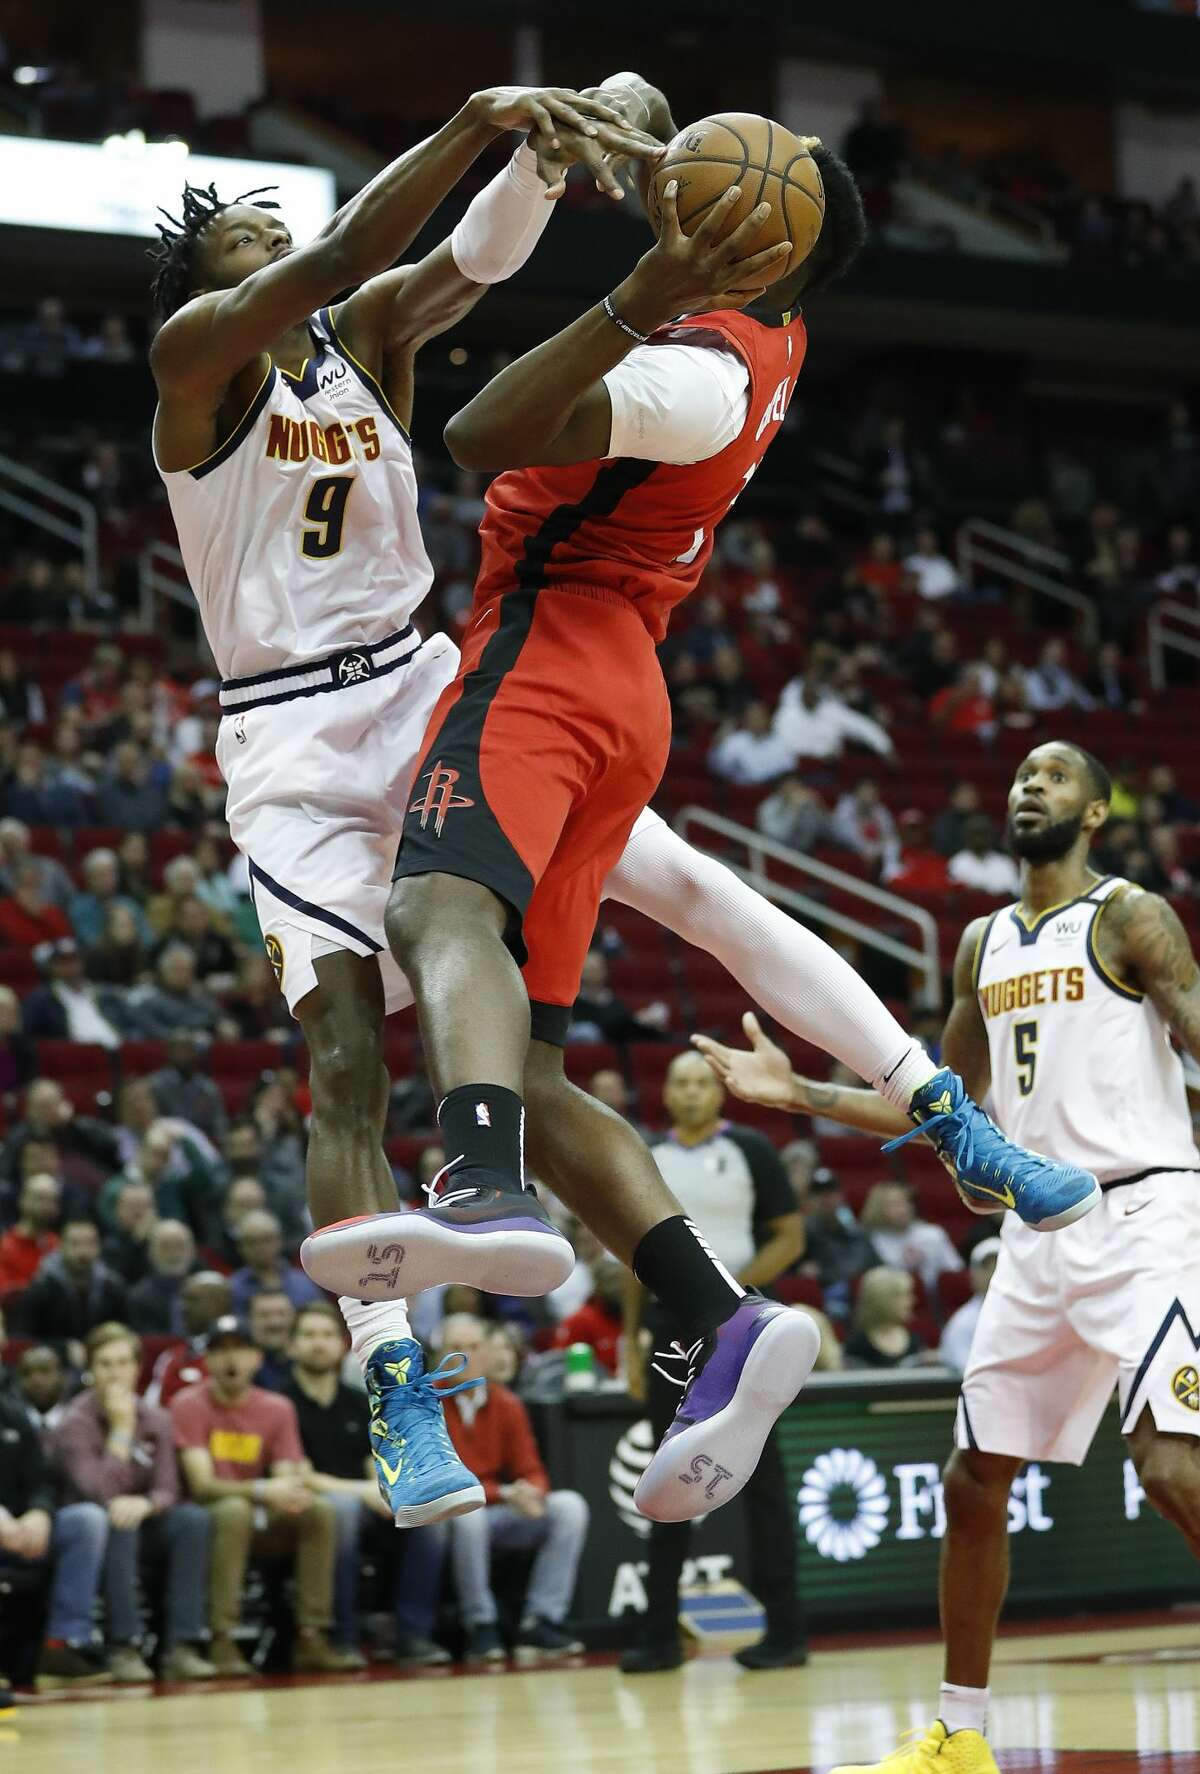 Houston Rockets center Clint Capela (15) goes up for a basket against Denver Nuggets forward Jerami Grant (9) during the first half of an NBA basketball game at Toyota Center in Houston, Wednesday, Jan. 22, 2020.